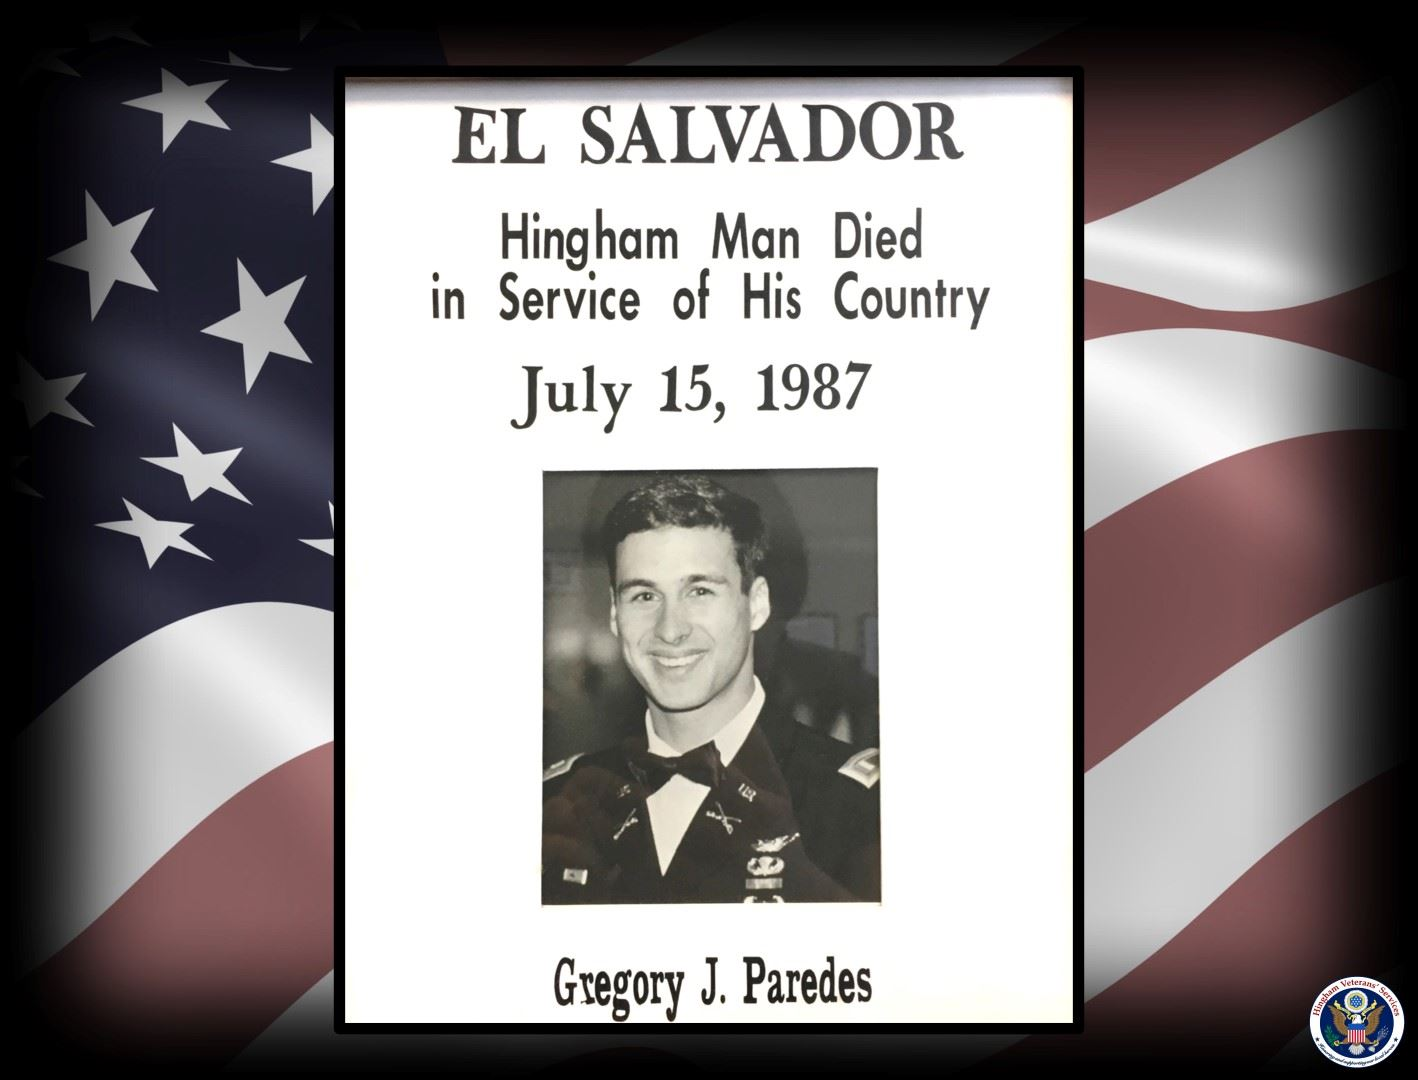 Photo of 2nd Lt. Gregory J. Paredes